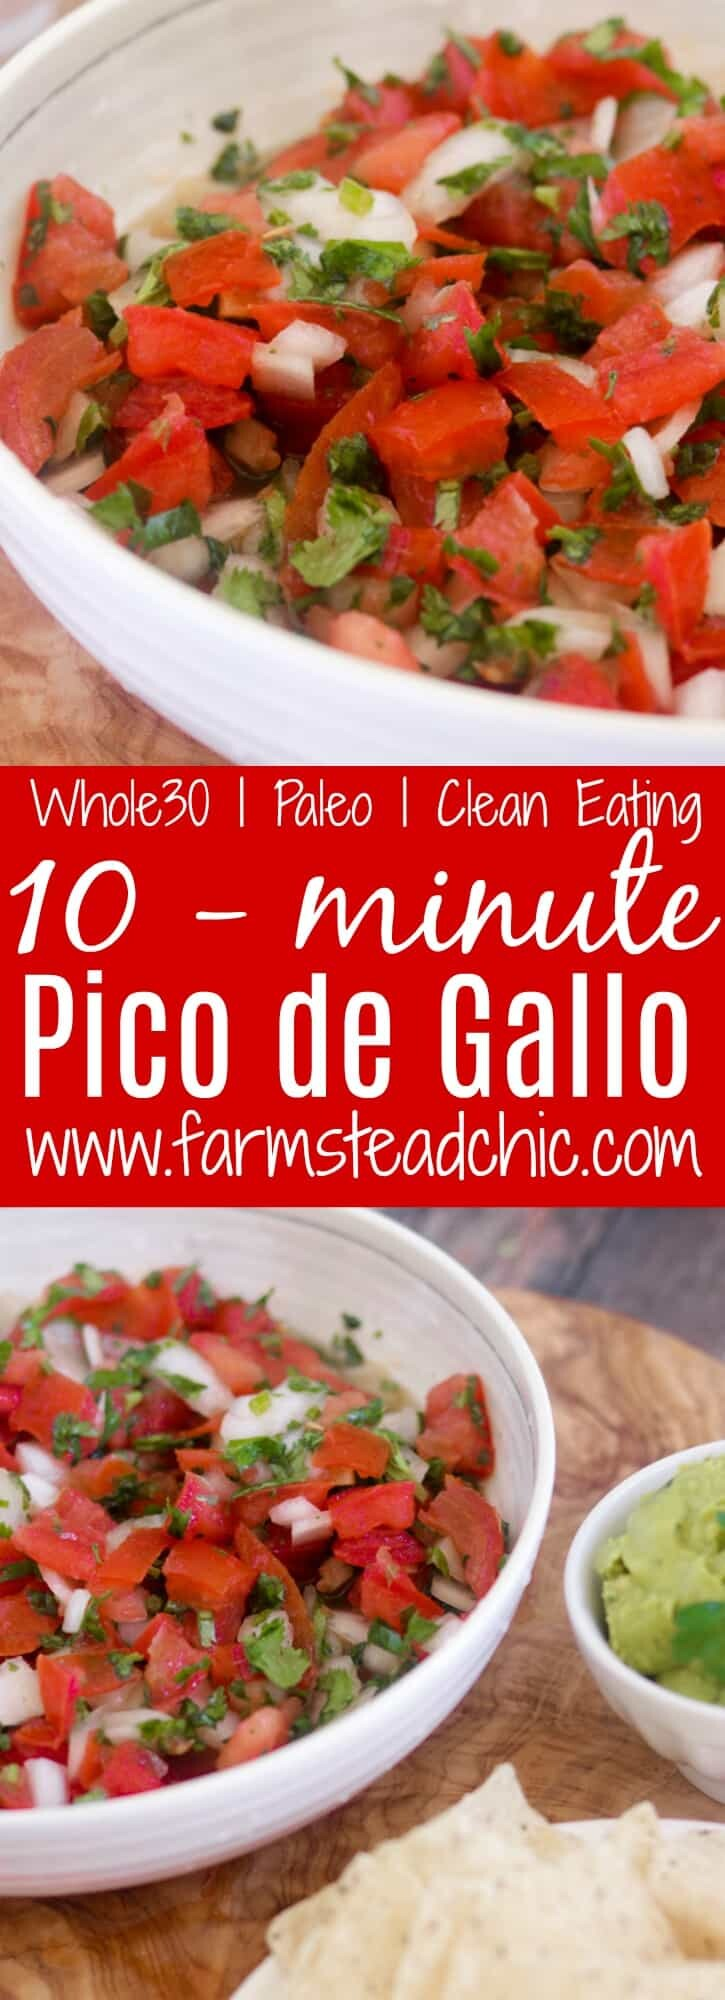 This Paleo and Whole30 Pico de Gallo is a quick and easy appetizer. Fresh tomatoes, onion, garlic, cilantro, lime juice and avocado oil and ten minutes are all you need. Vegan-, vegetarian-friendly.